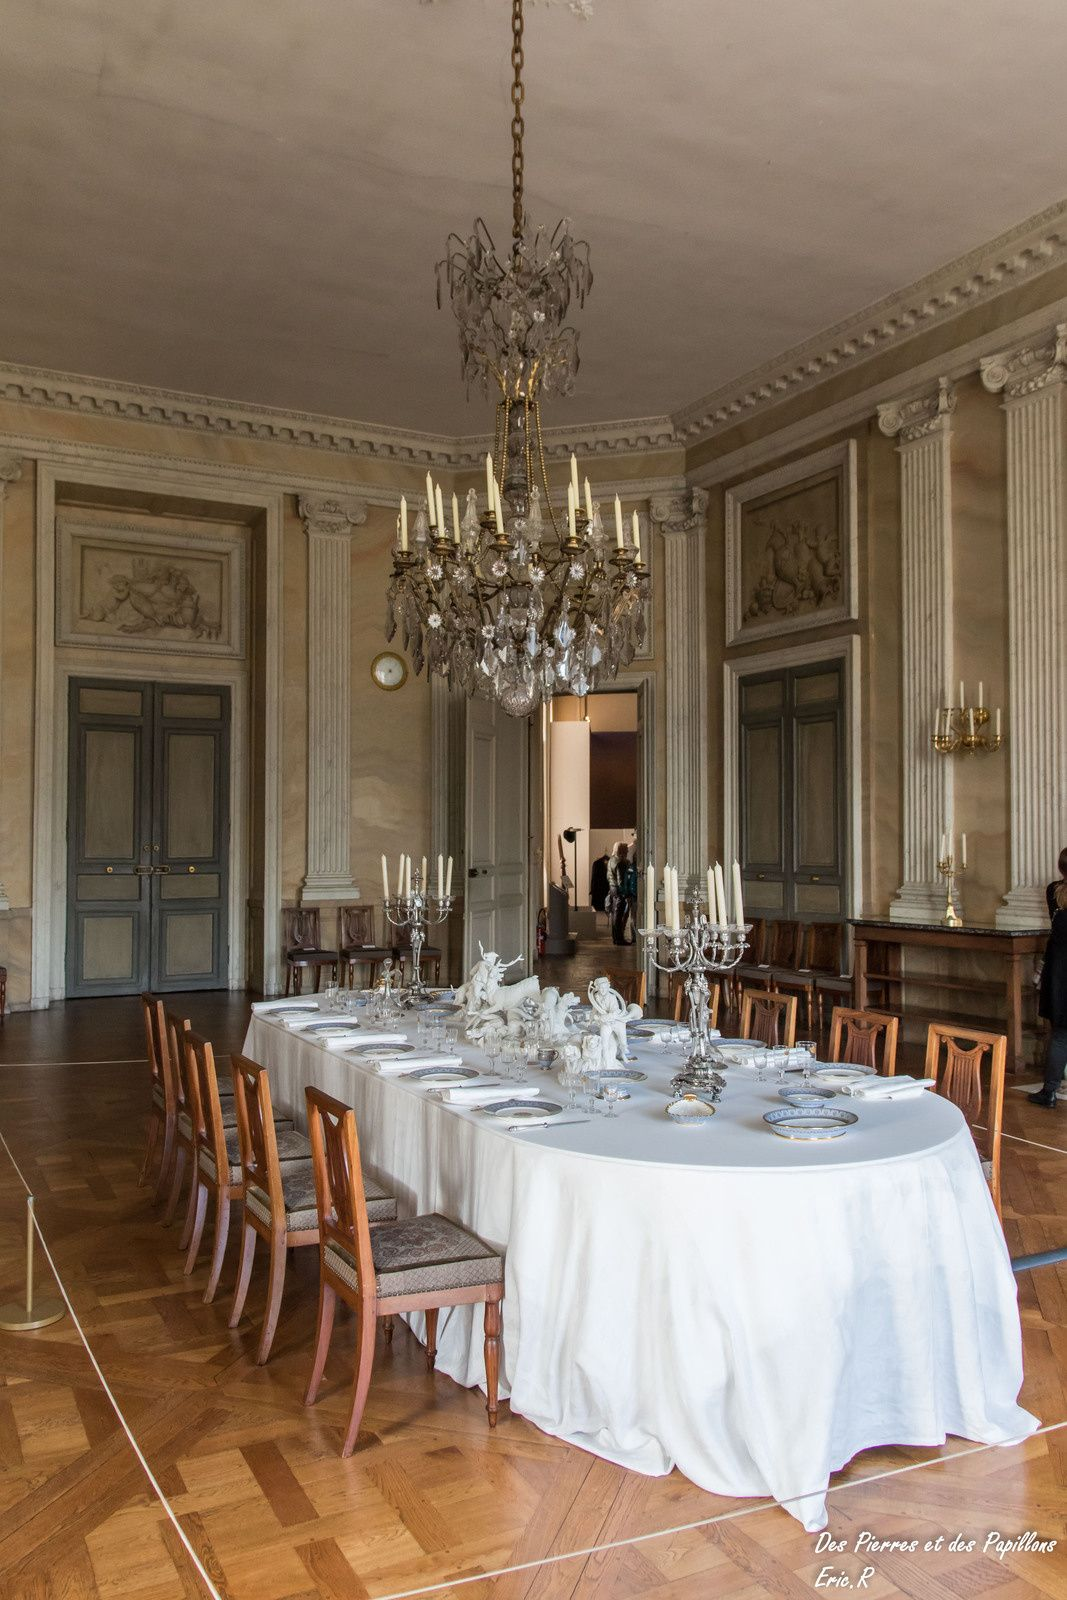 La Salle A Manger De L Empereur French Interiors French Style In